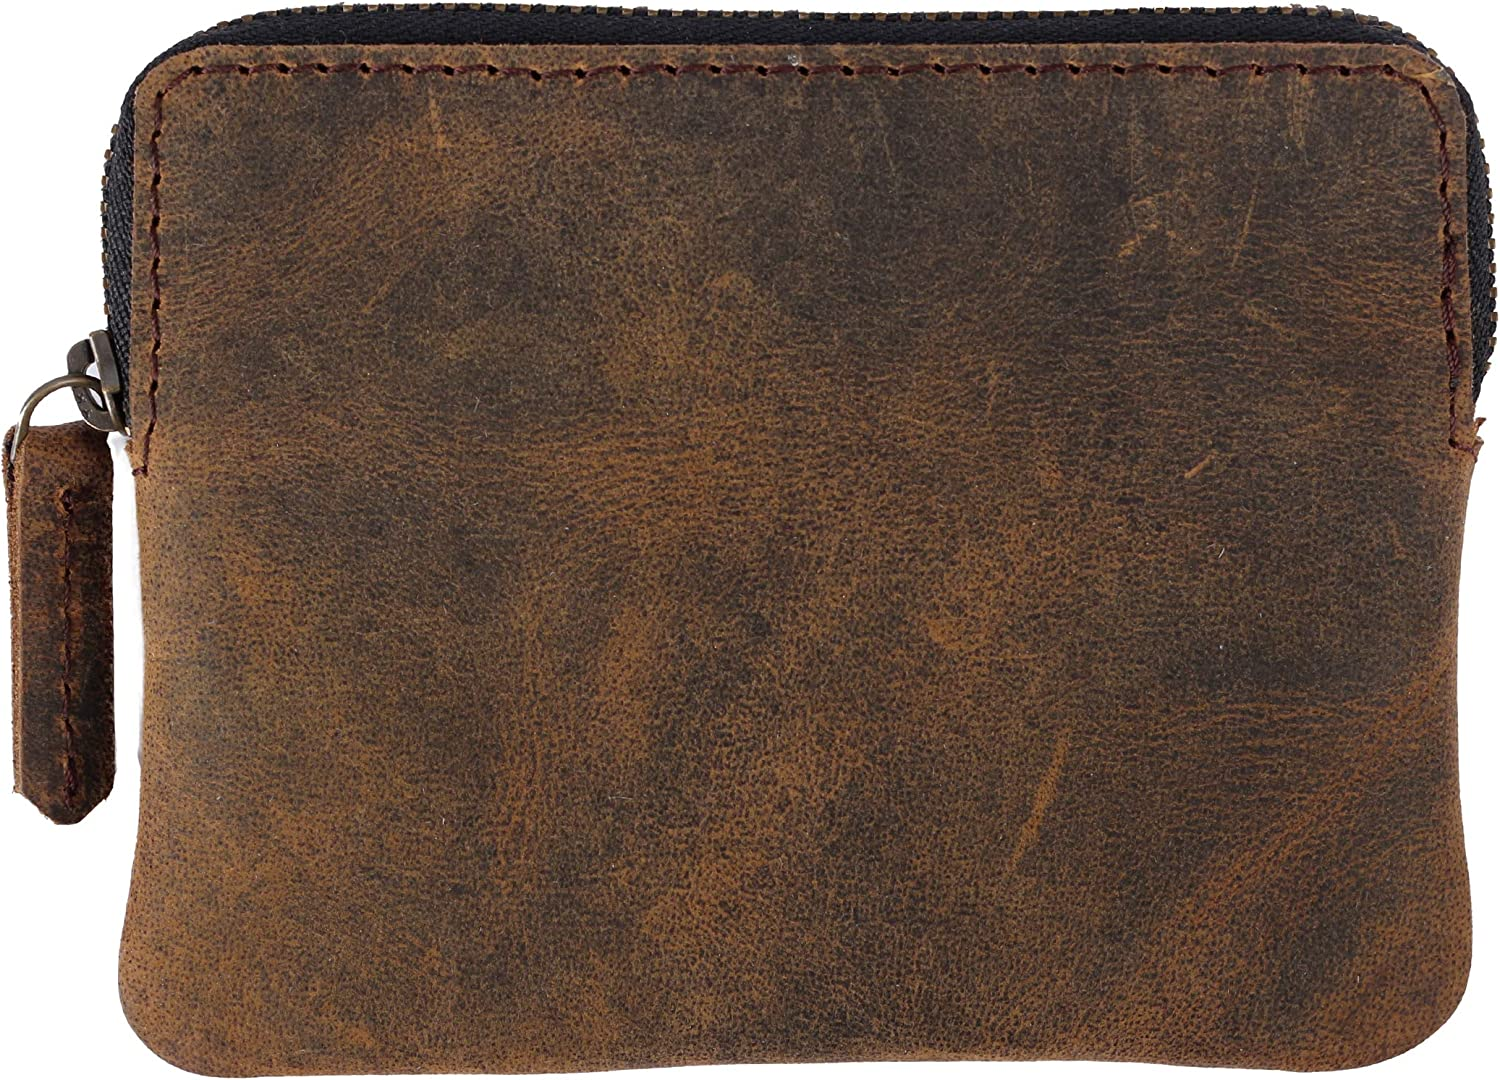 Leather Zippered Coin Purse Pouch Change Holder Wallet Gift For Men & Women